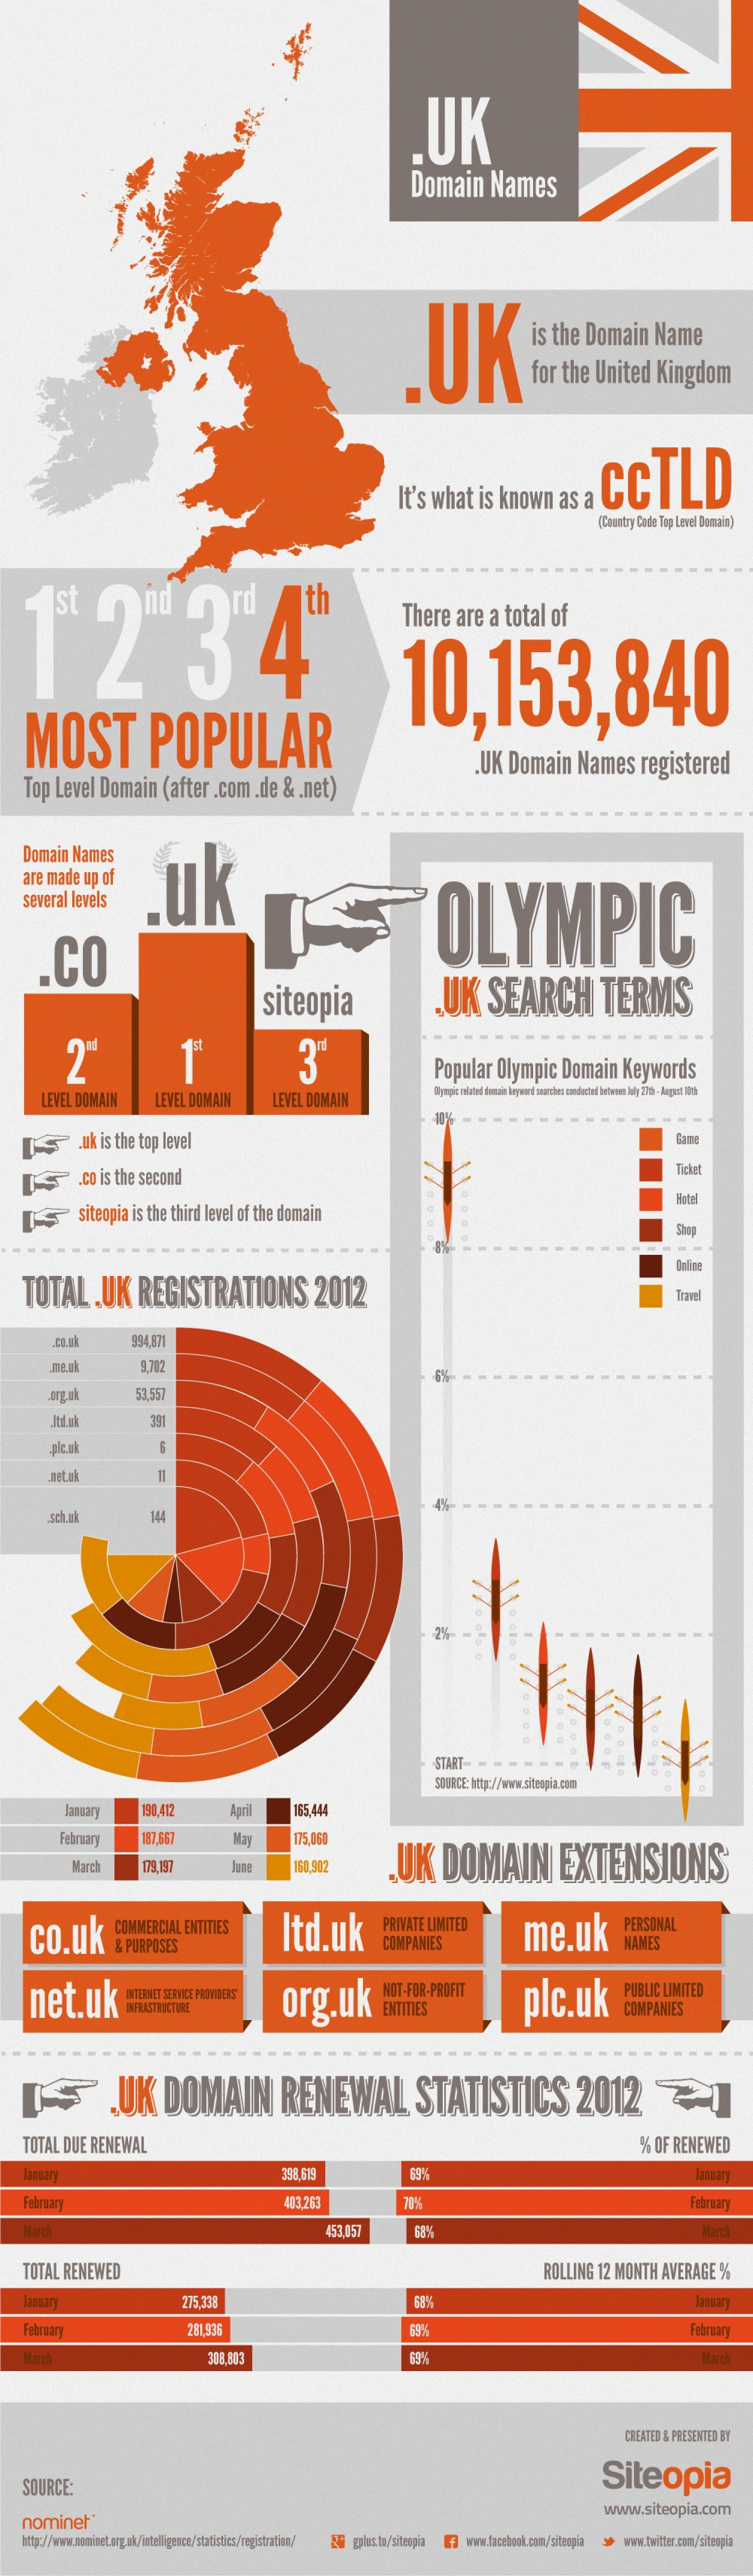 UK Domain Names and Olympics Search Terms Infographic